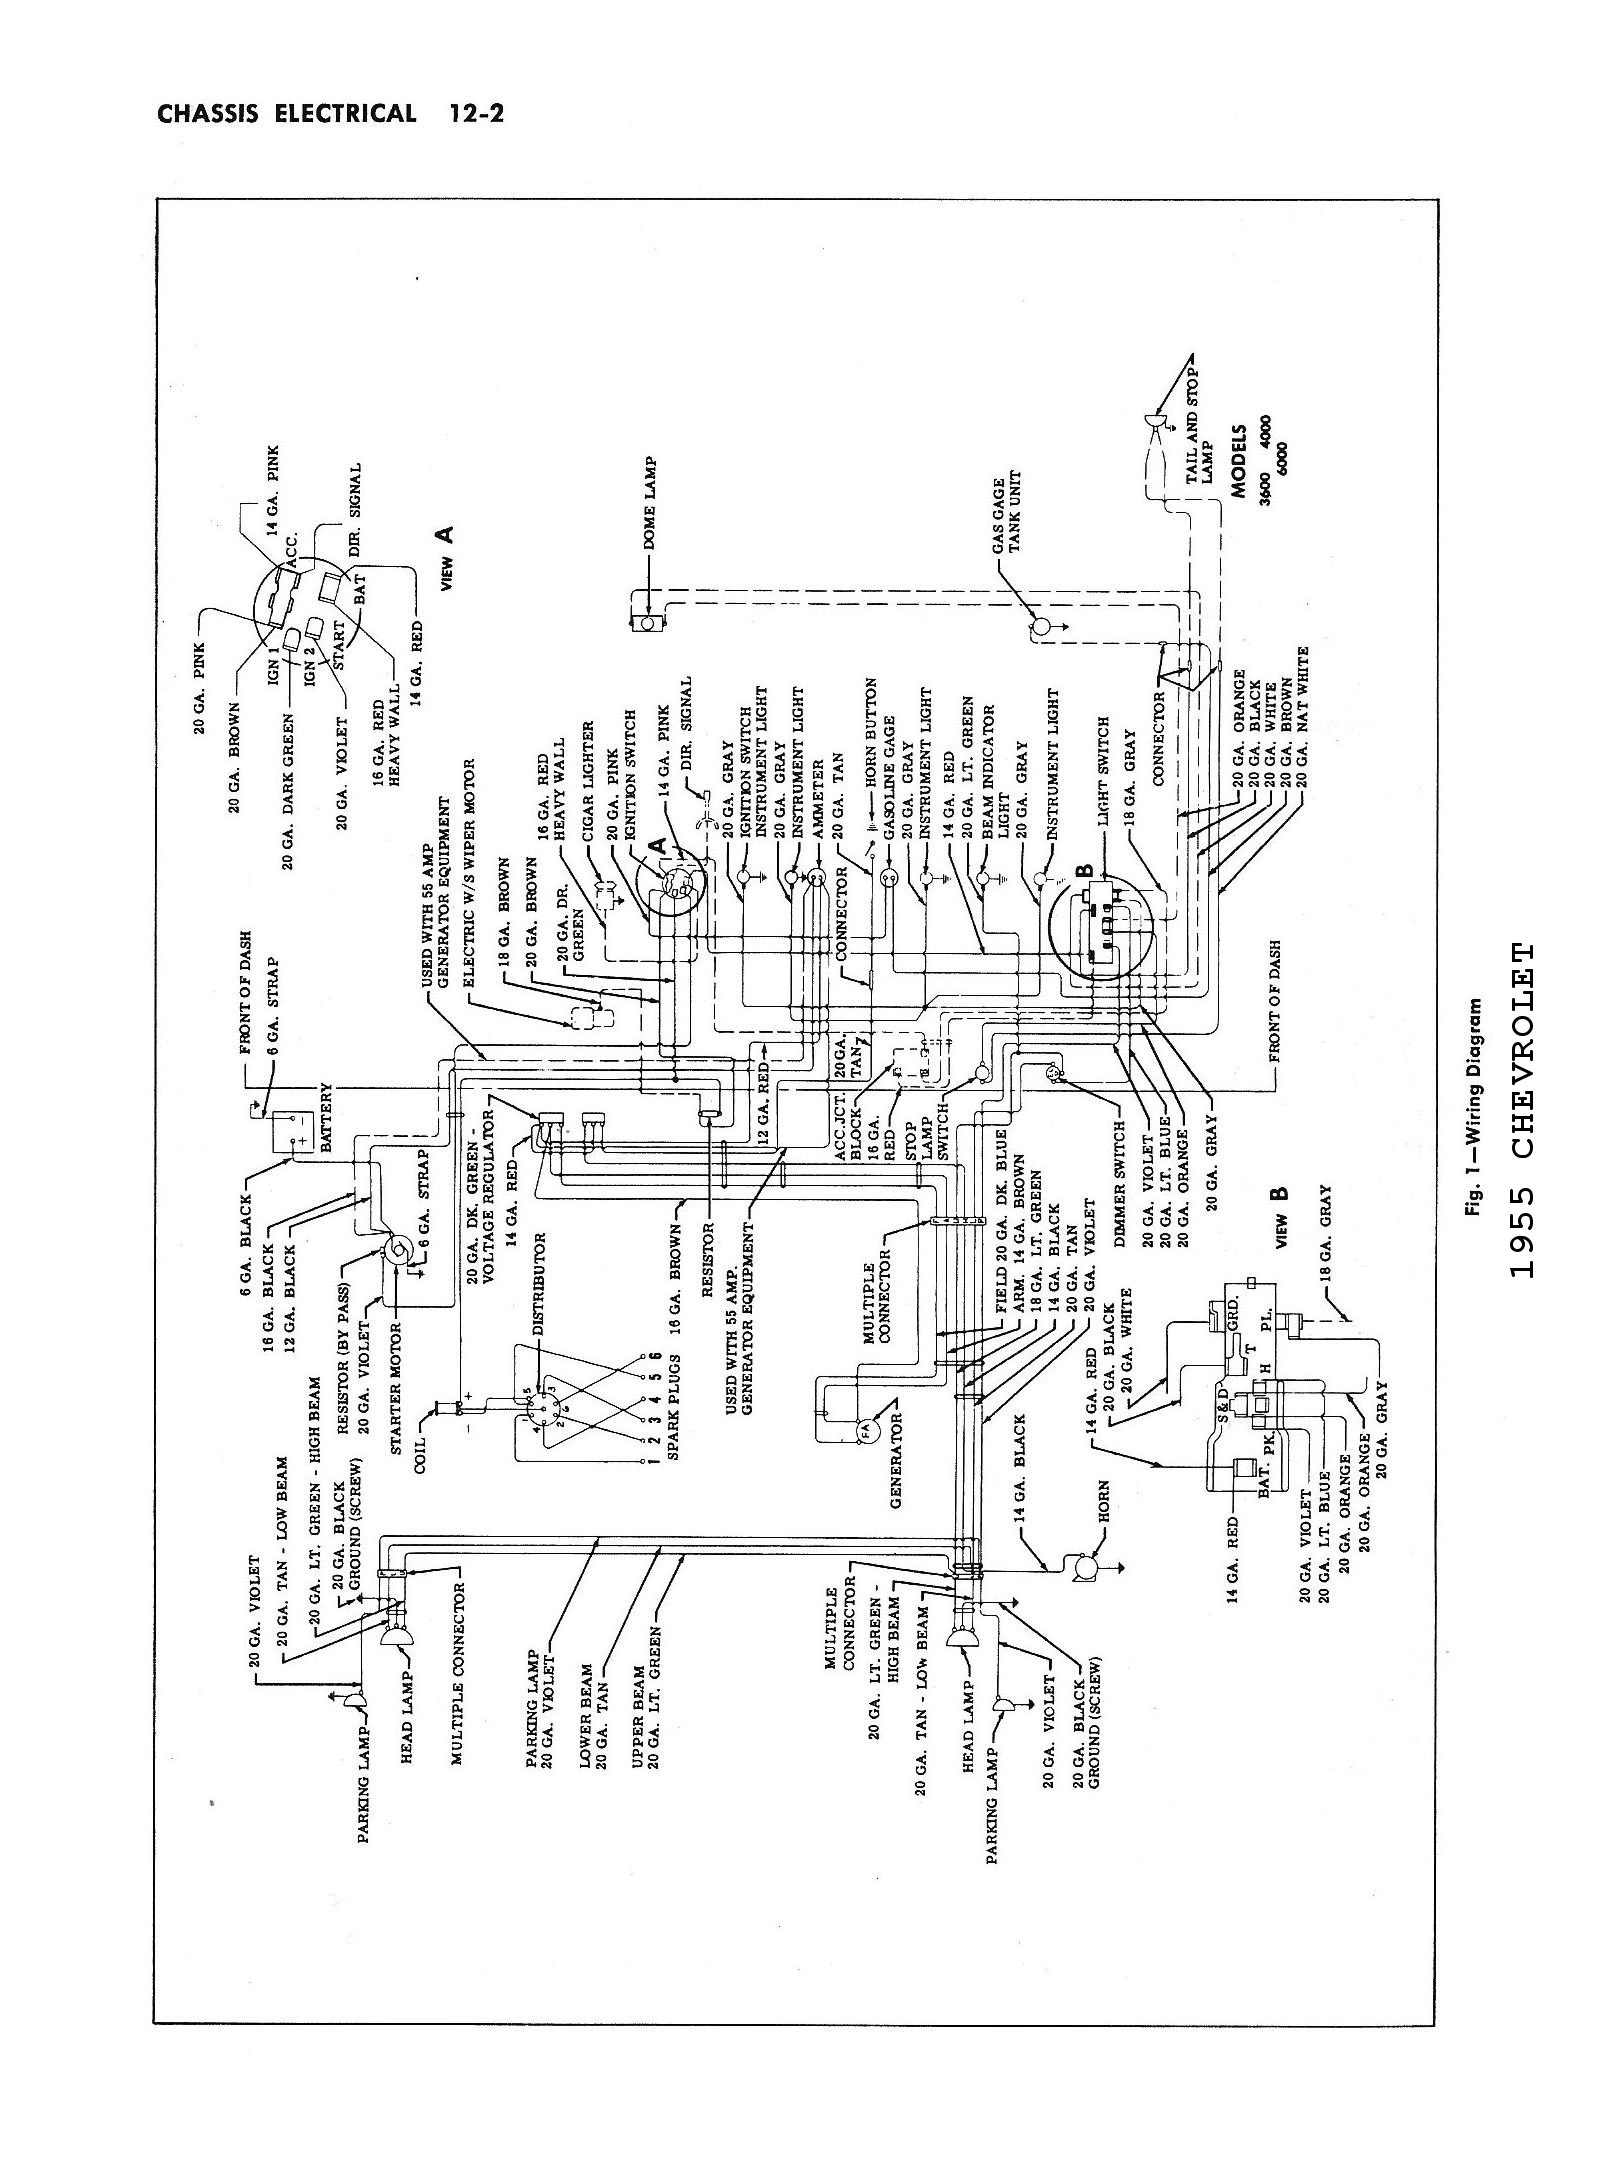 1959 Chevy Pickup Wiring Diagram